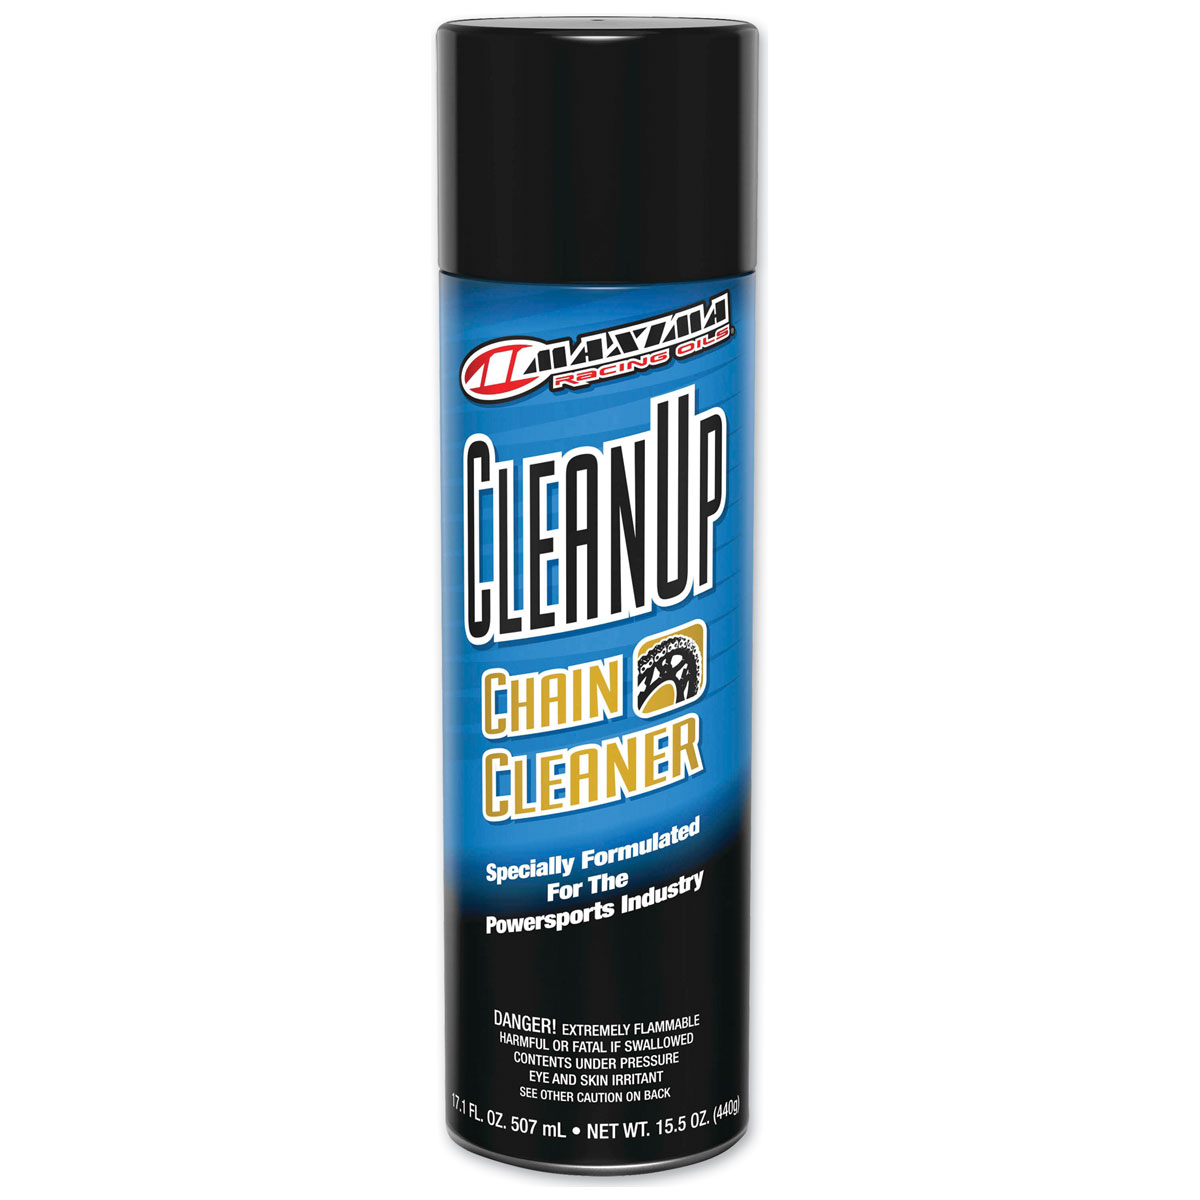 Maxima Clean Up Chain Cleaner